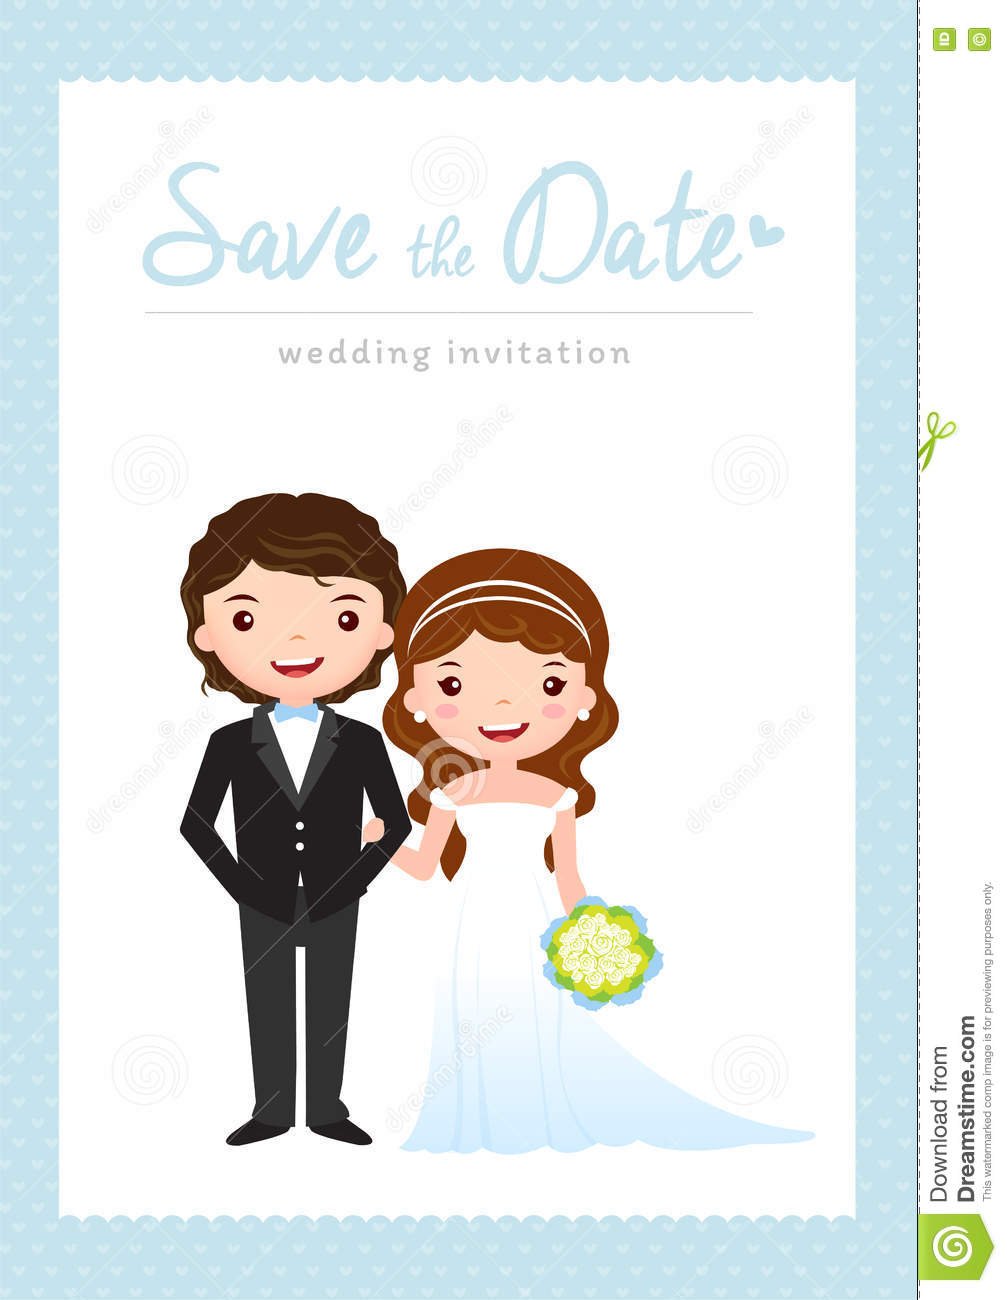 ... groom and bride cartoon wedding template design, vector illustration